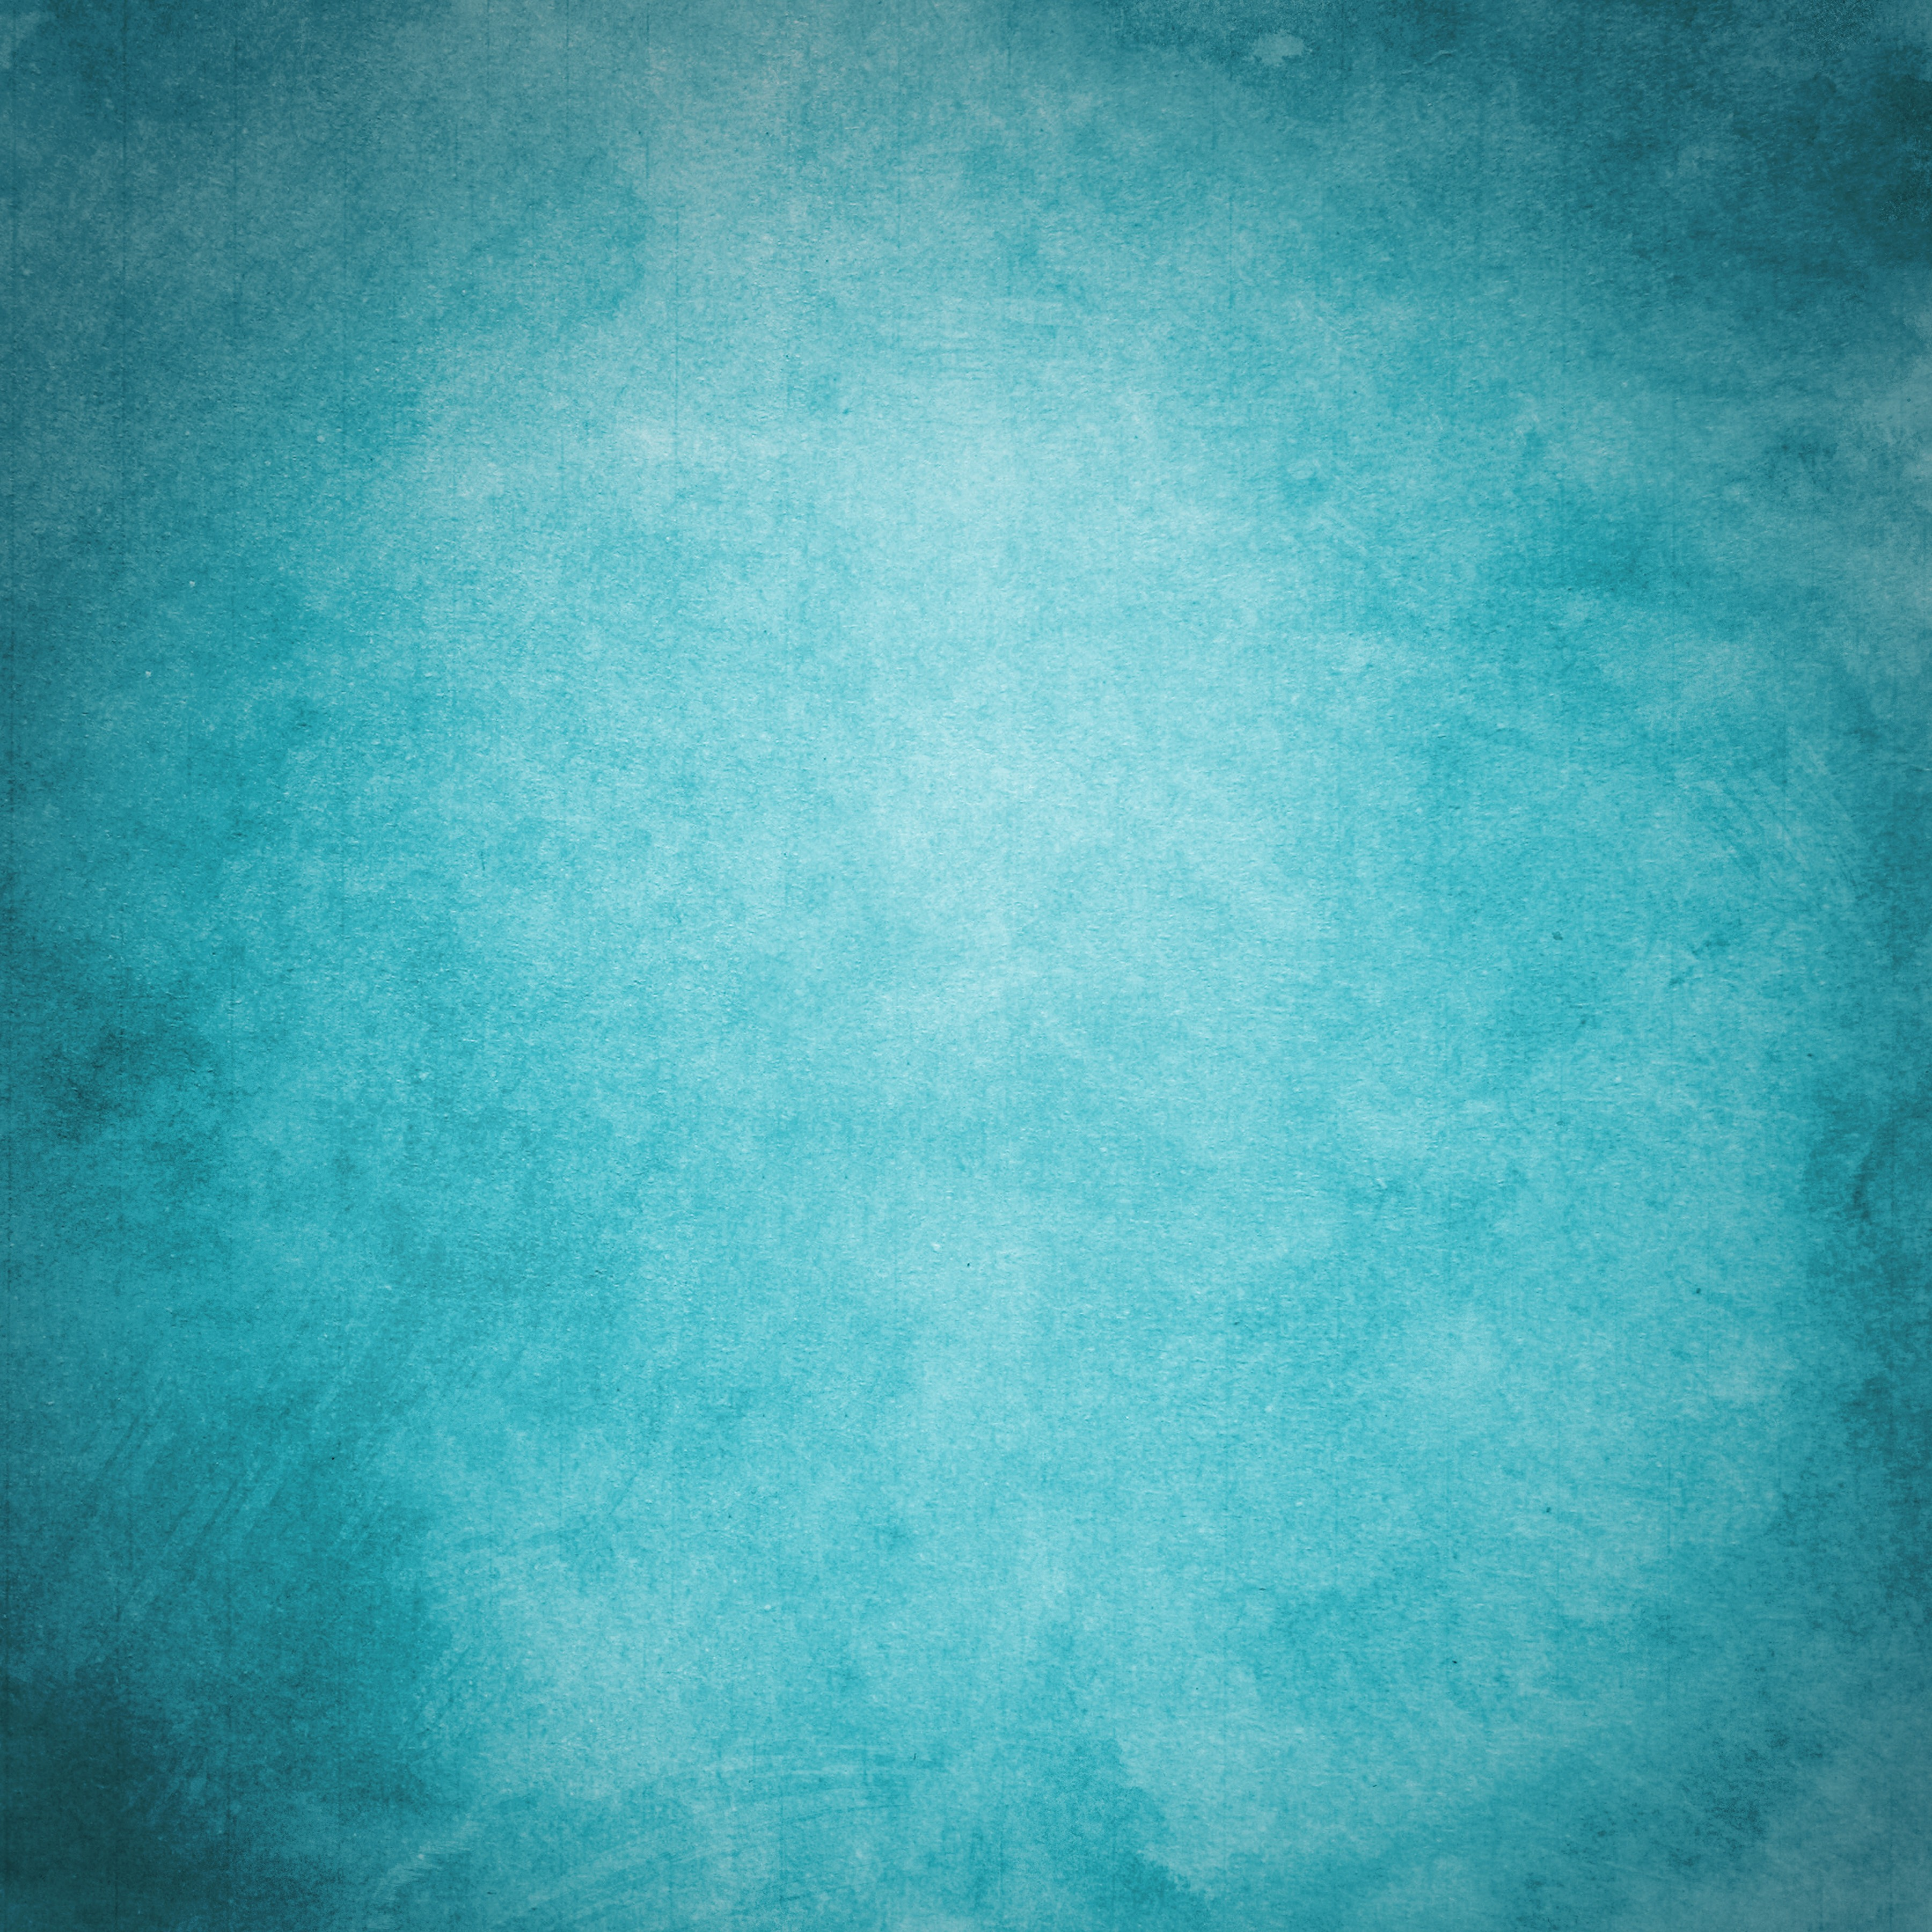 Colored Vintage Paper: Texture Pack